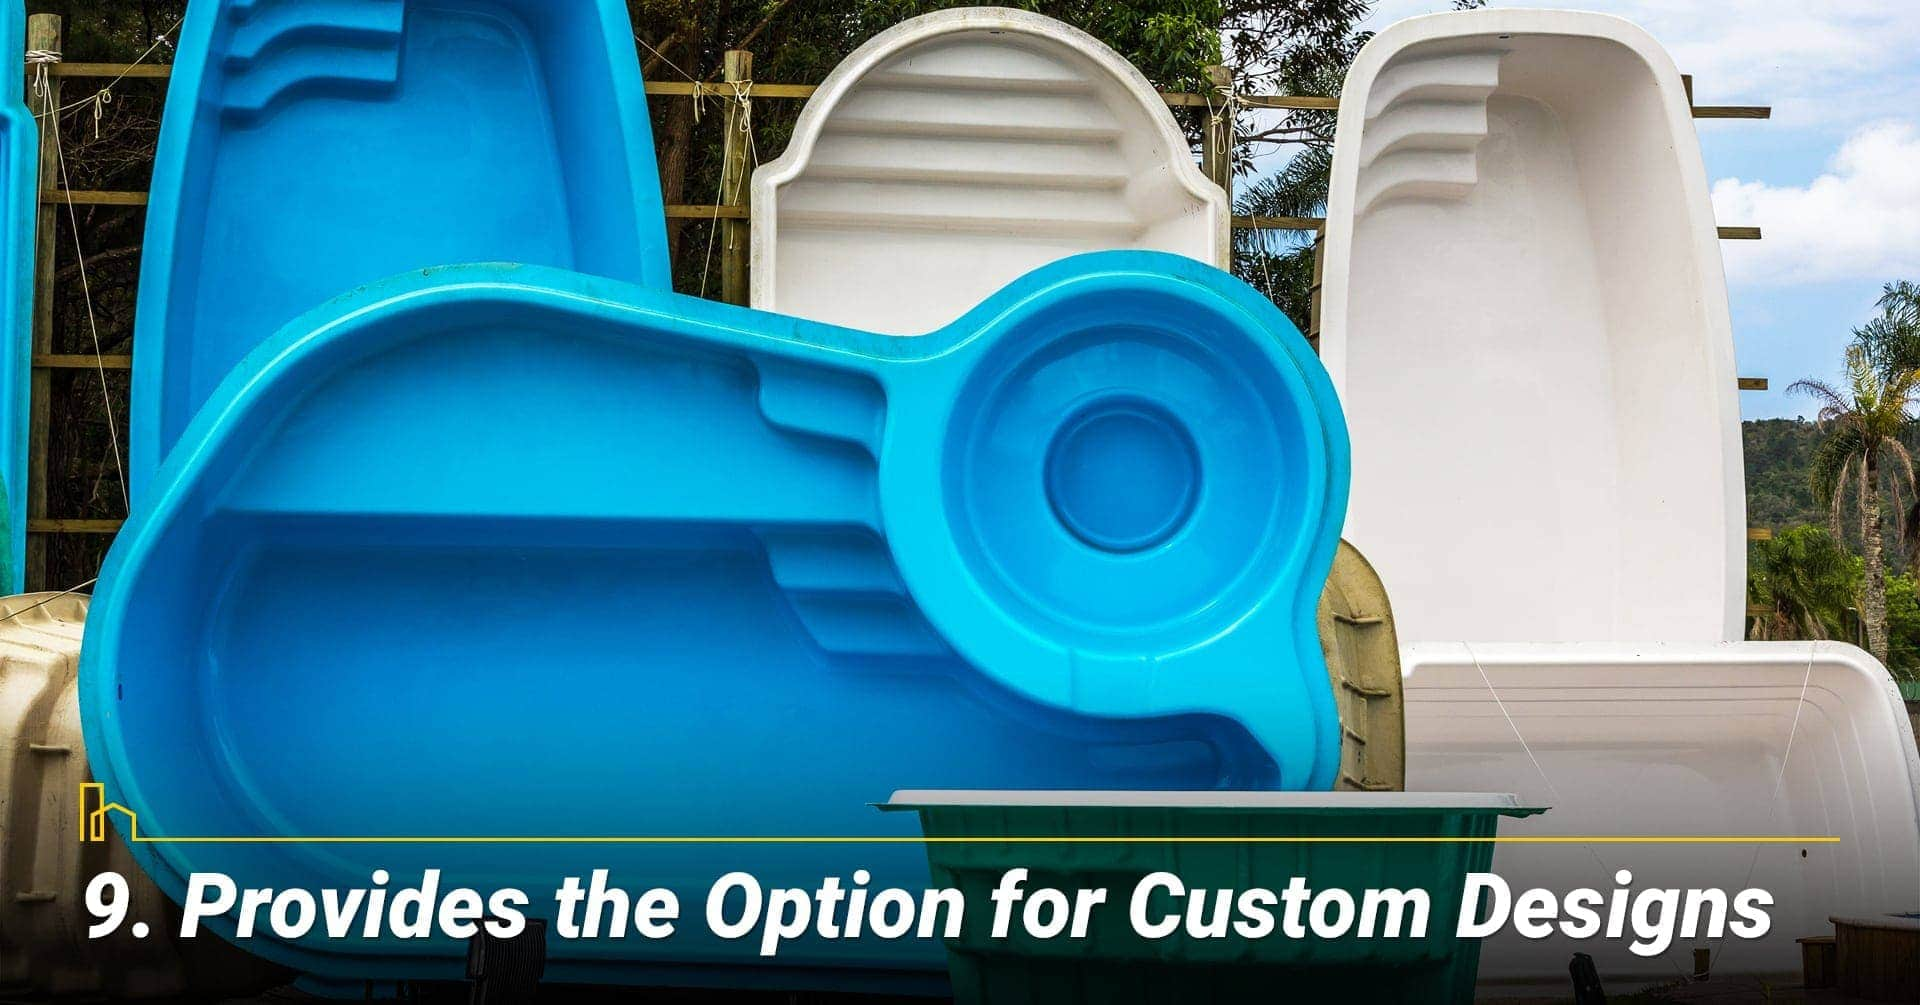 Provides the Option for Custom Designs, there are many options